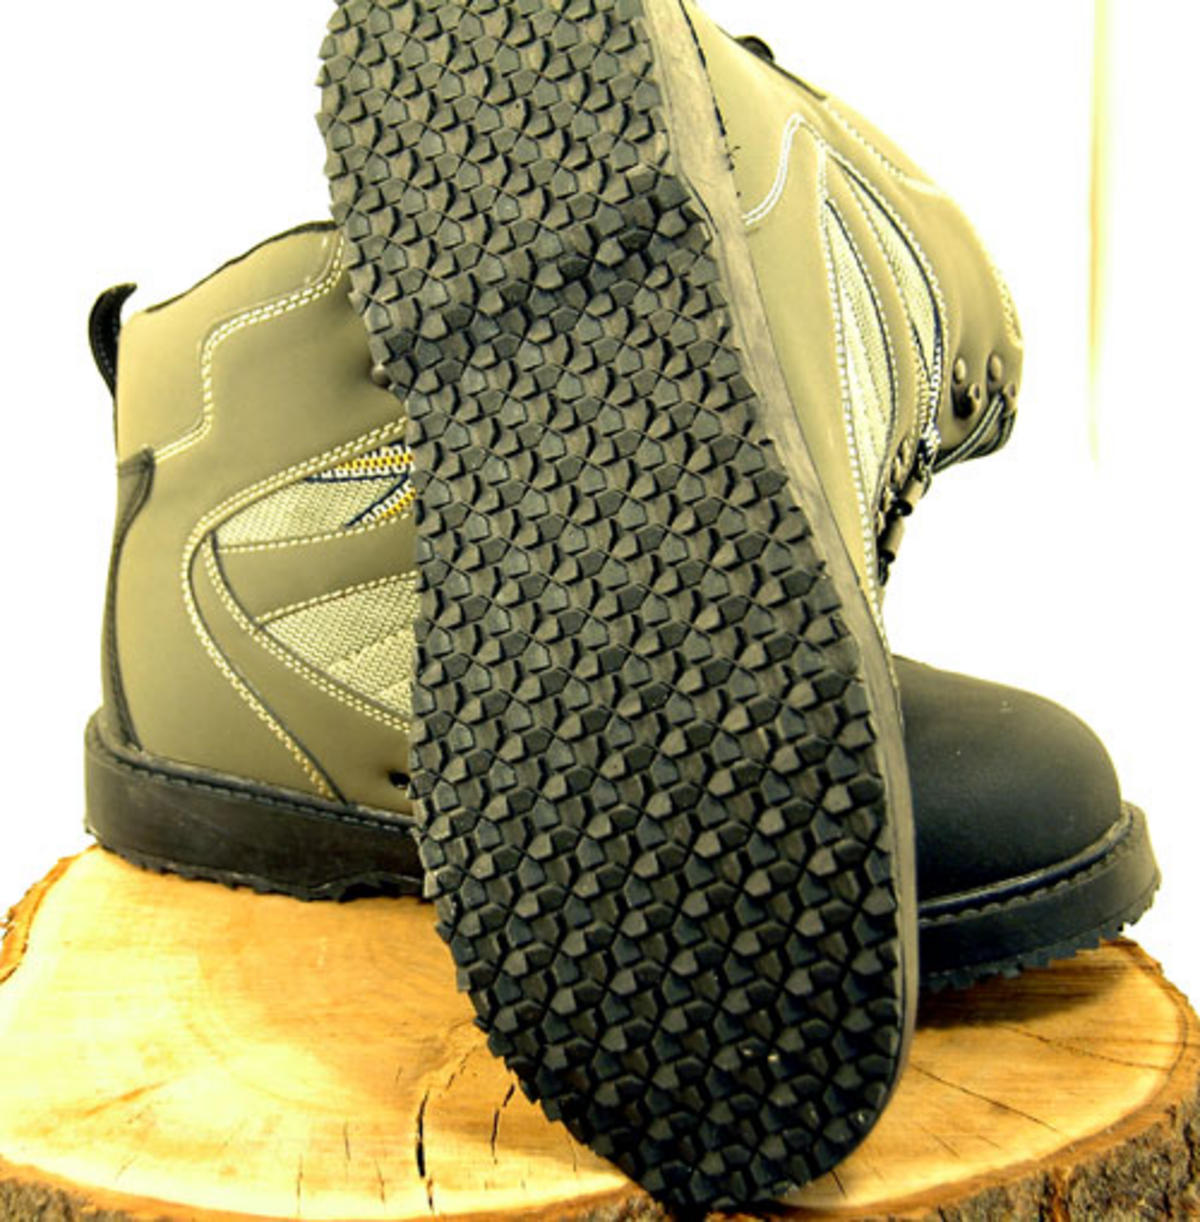 Bison wading boots in studded felt sole or rubber sole for Fishing waders with boots